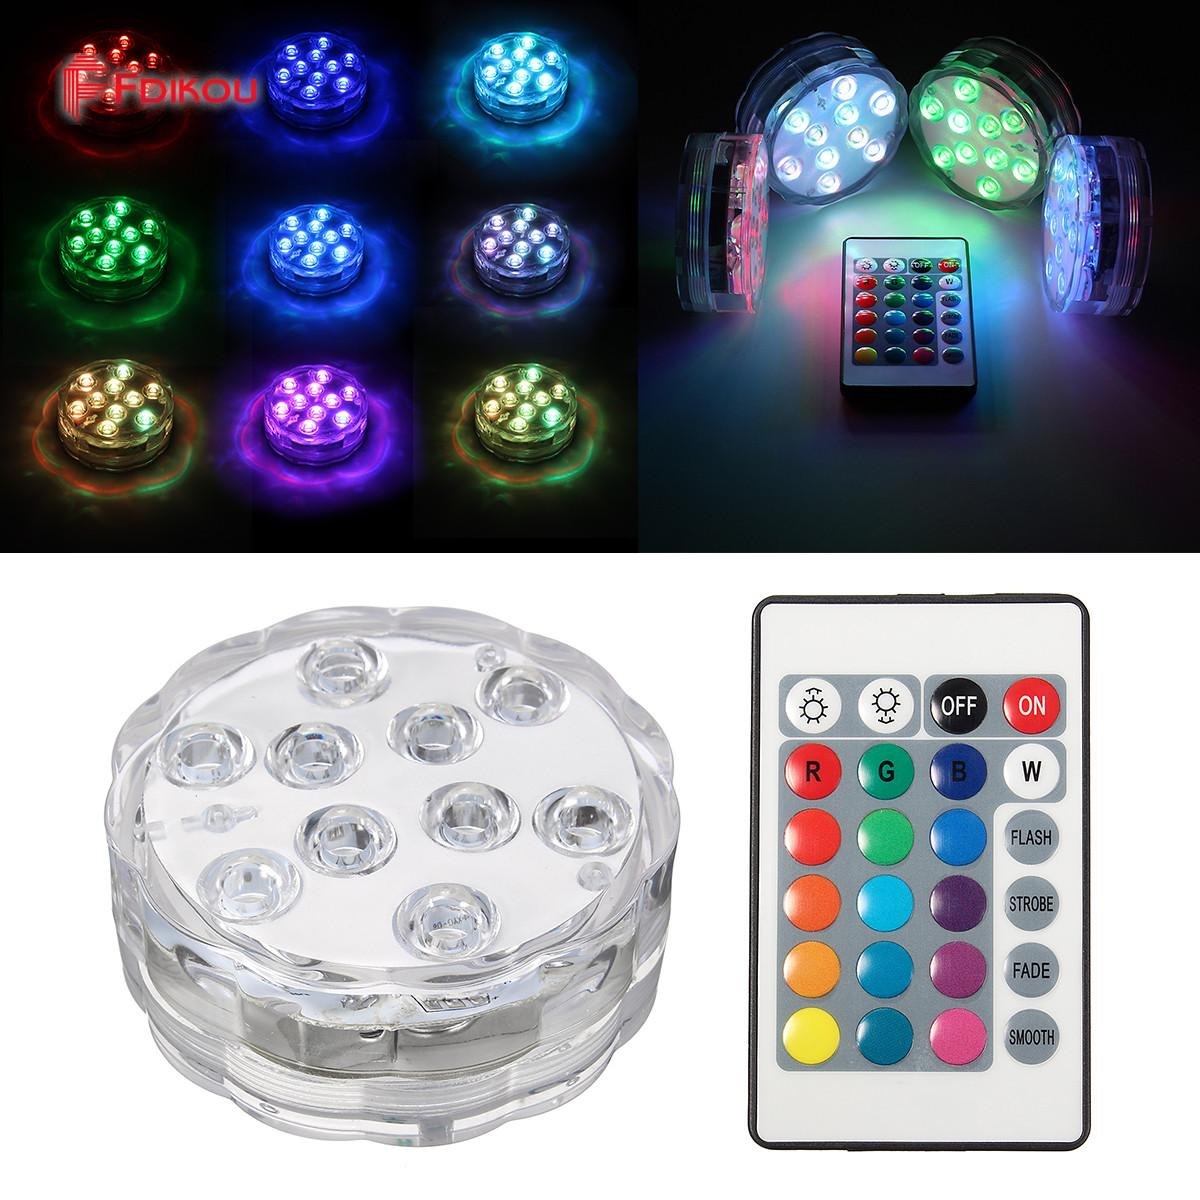 Fdikou 10 Led Remote Controlled RGB Submersible Light Battery Operated Underwater Night Lamp Vase Bowl Outdoor Garden Party Decoration Singapore